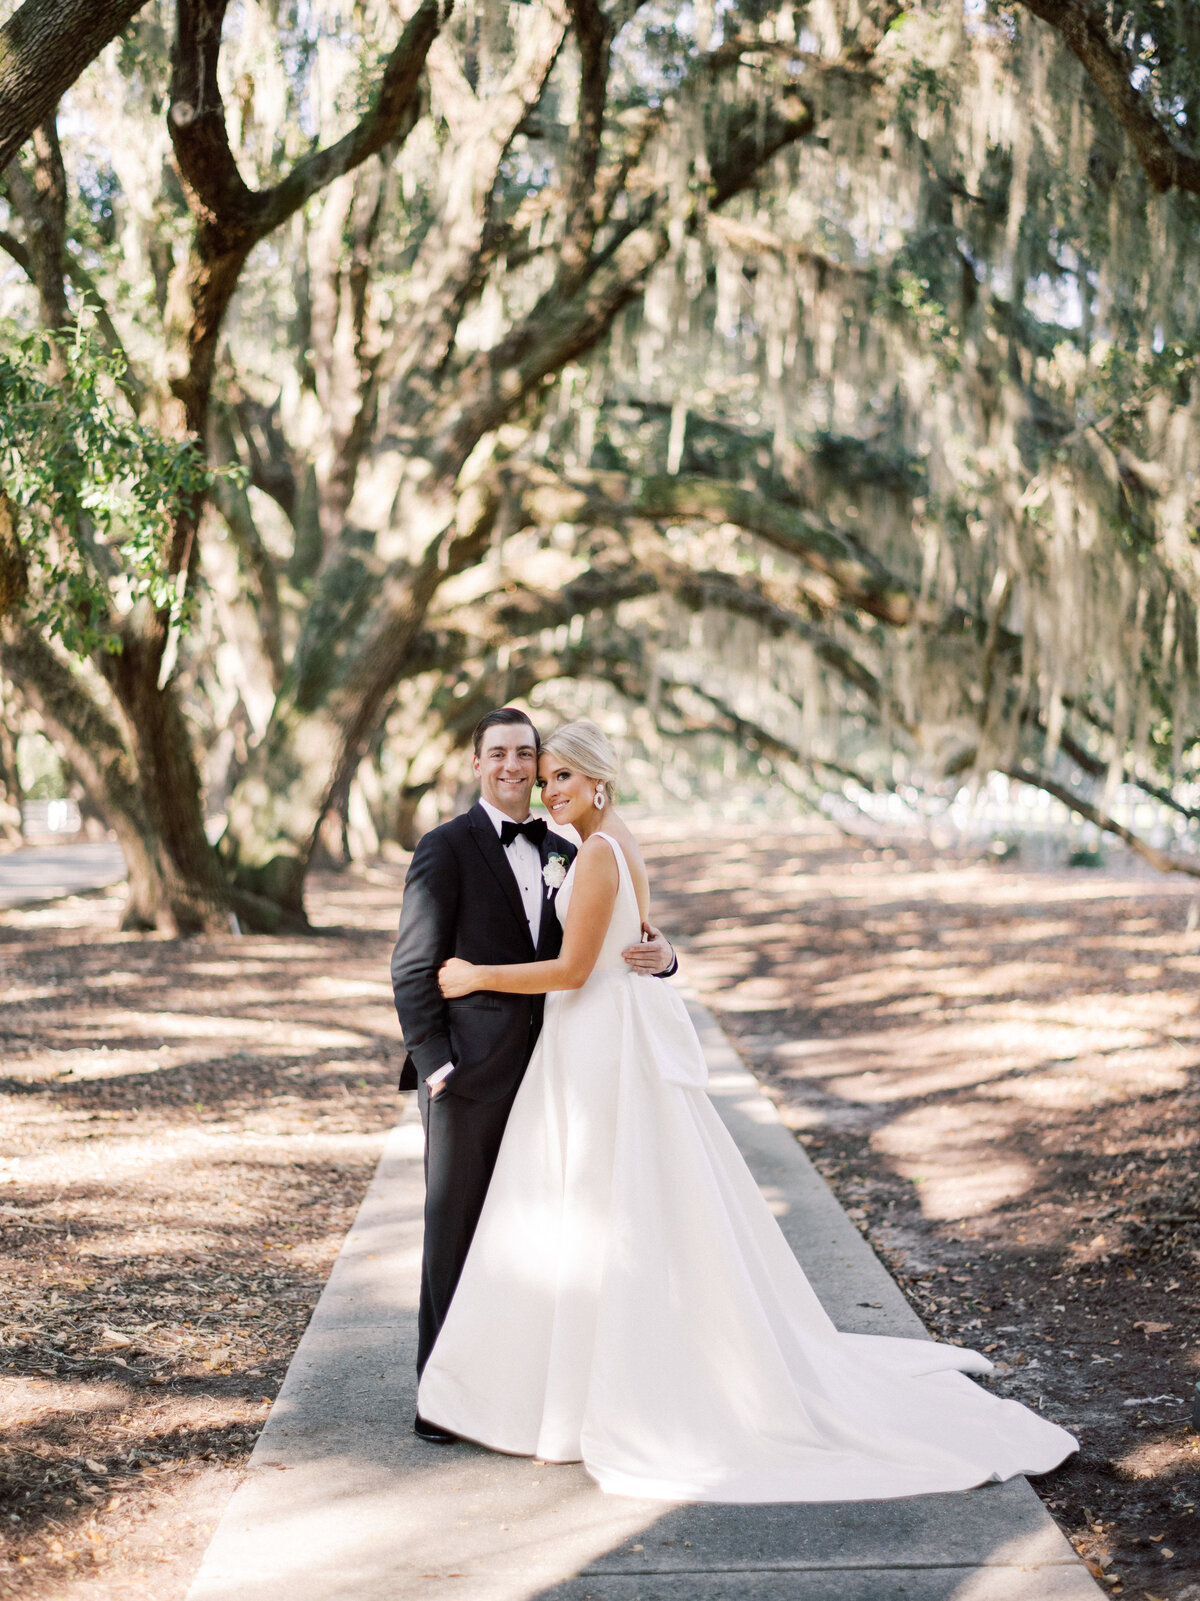 Belfair-Plantation-Bluffton-Hilton-Head-Island-Wedding-Philip-Casey-Photo-29